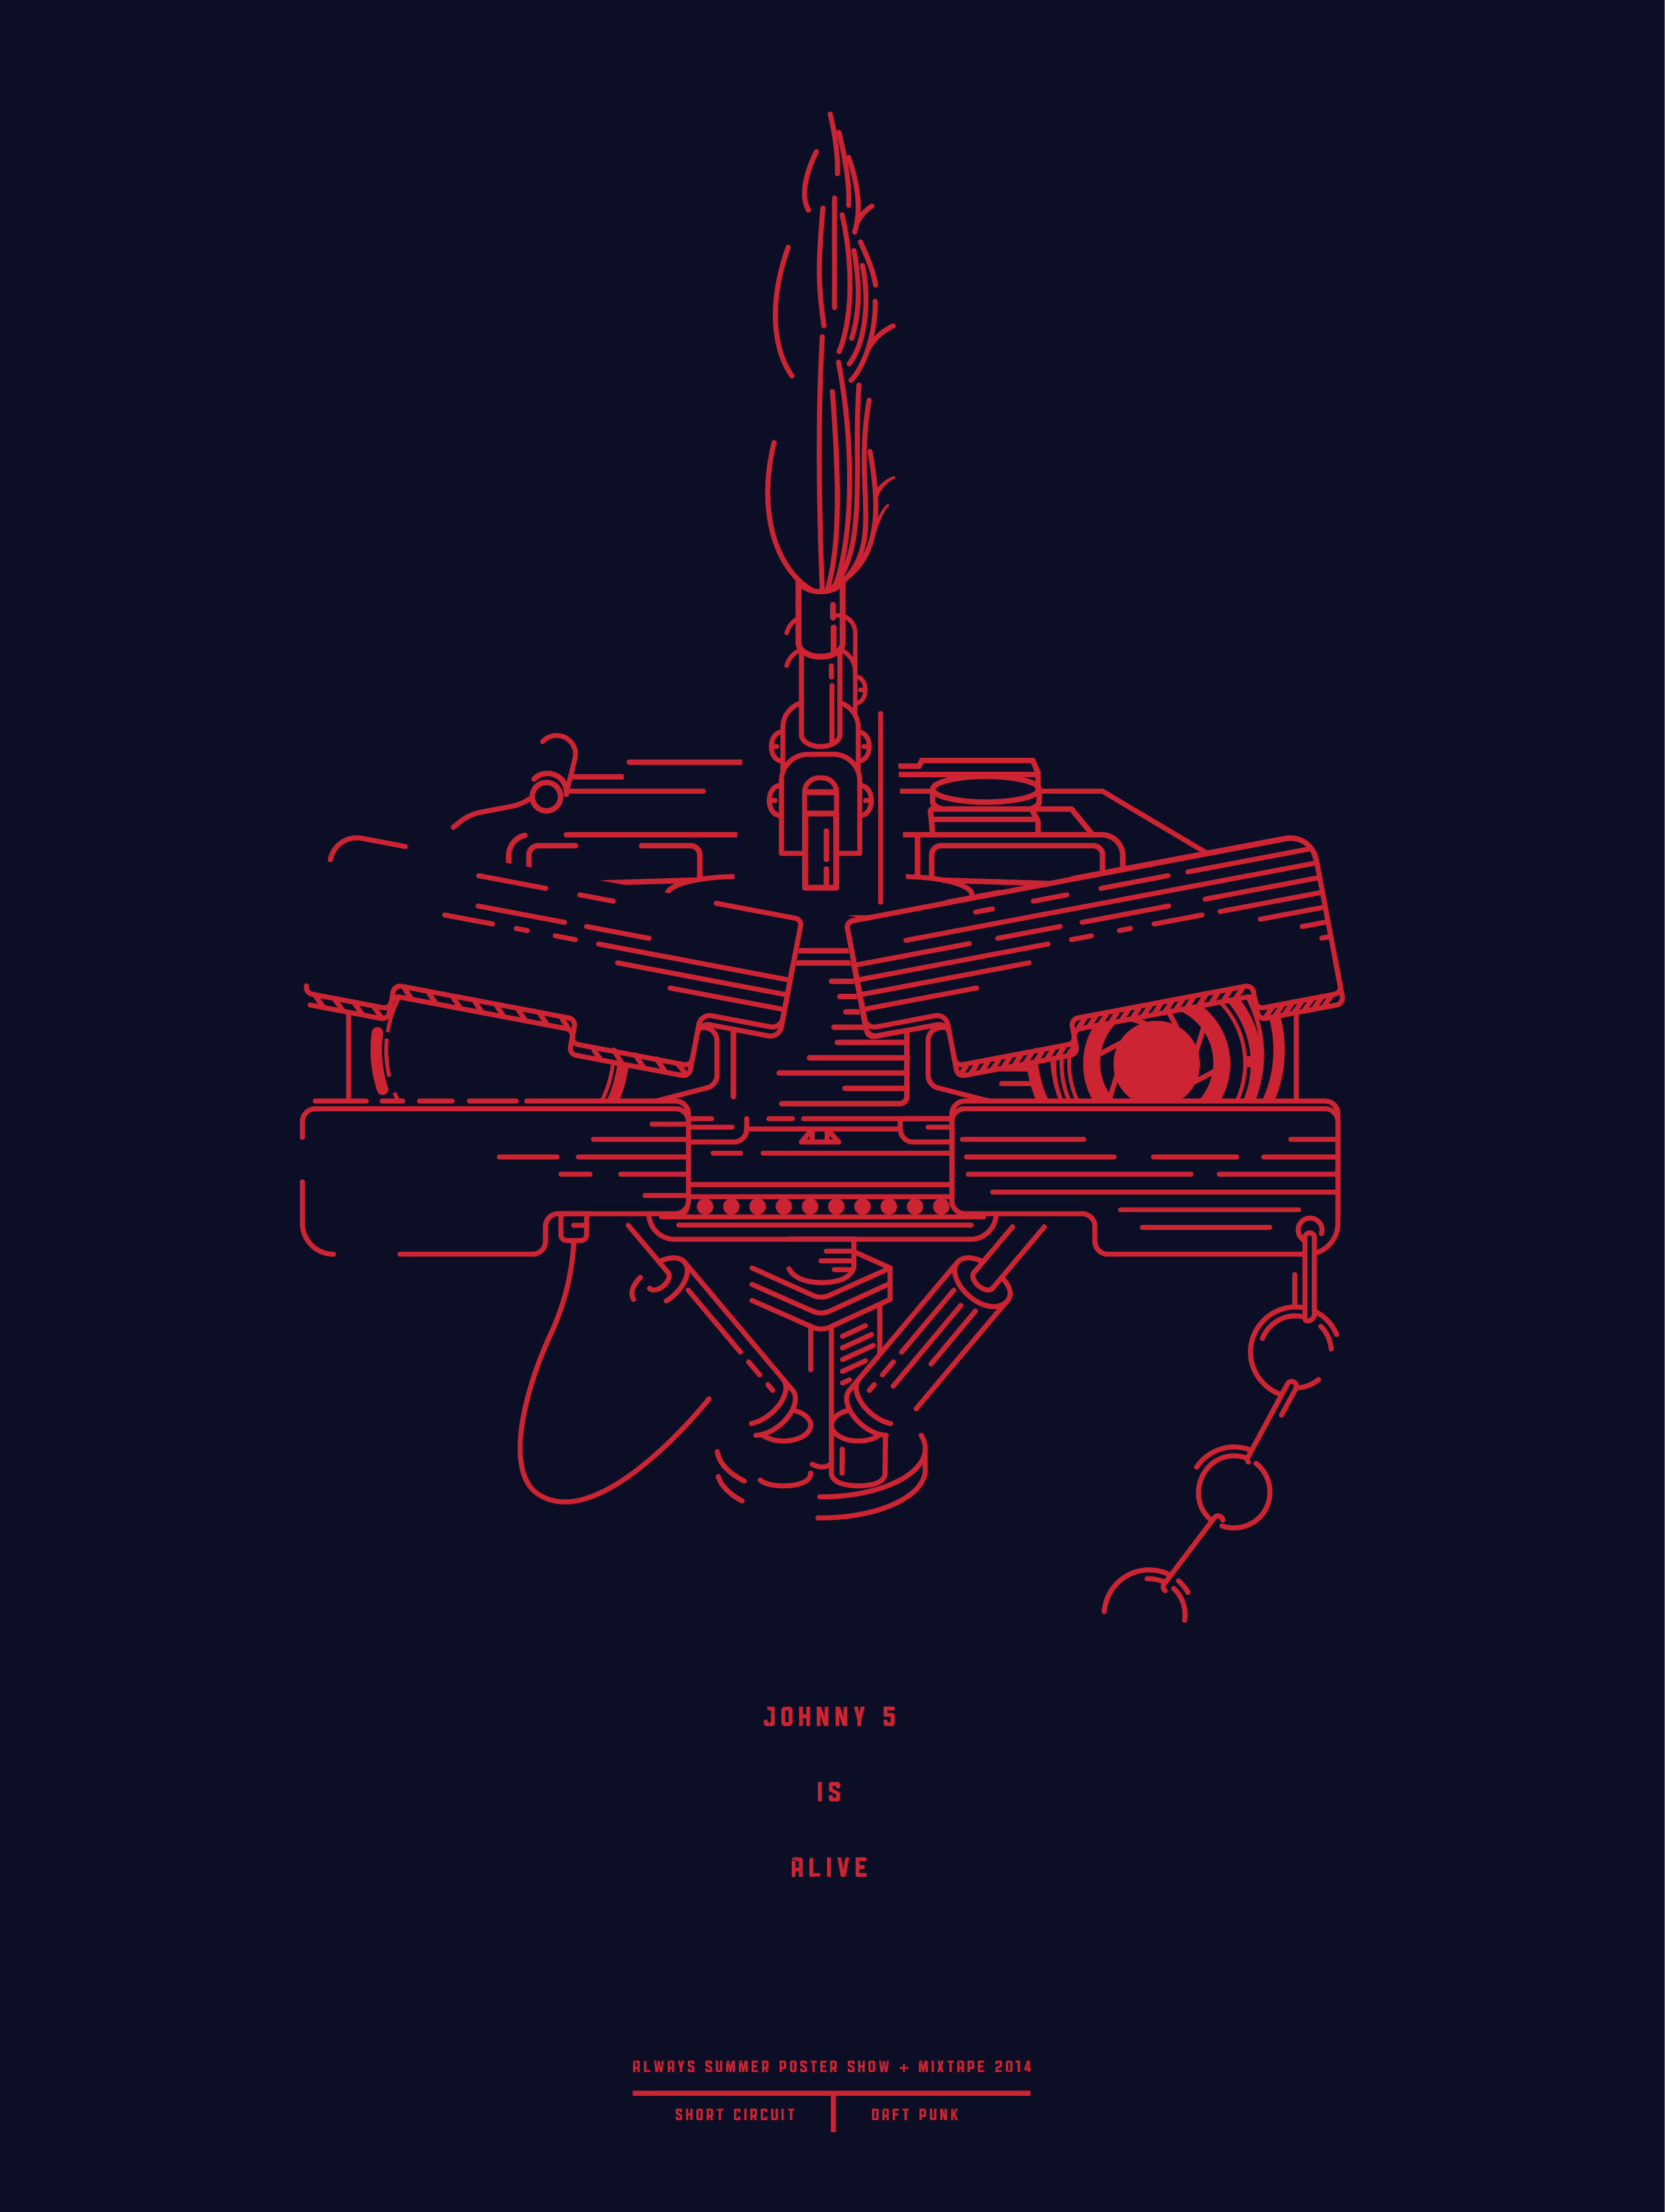 Short Circuit Johnny 5 Poster Modern Design Of Wiring Diagram Number Is Alive From The Movie Dribbble Johnny5 Punk2 By Benjamin Windsor Rh Com Quotes